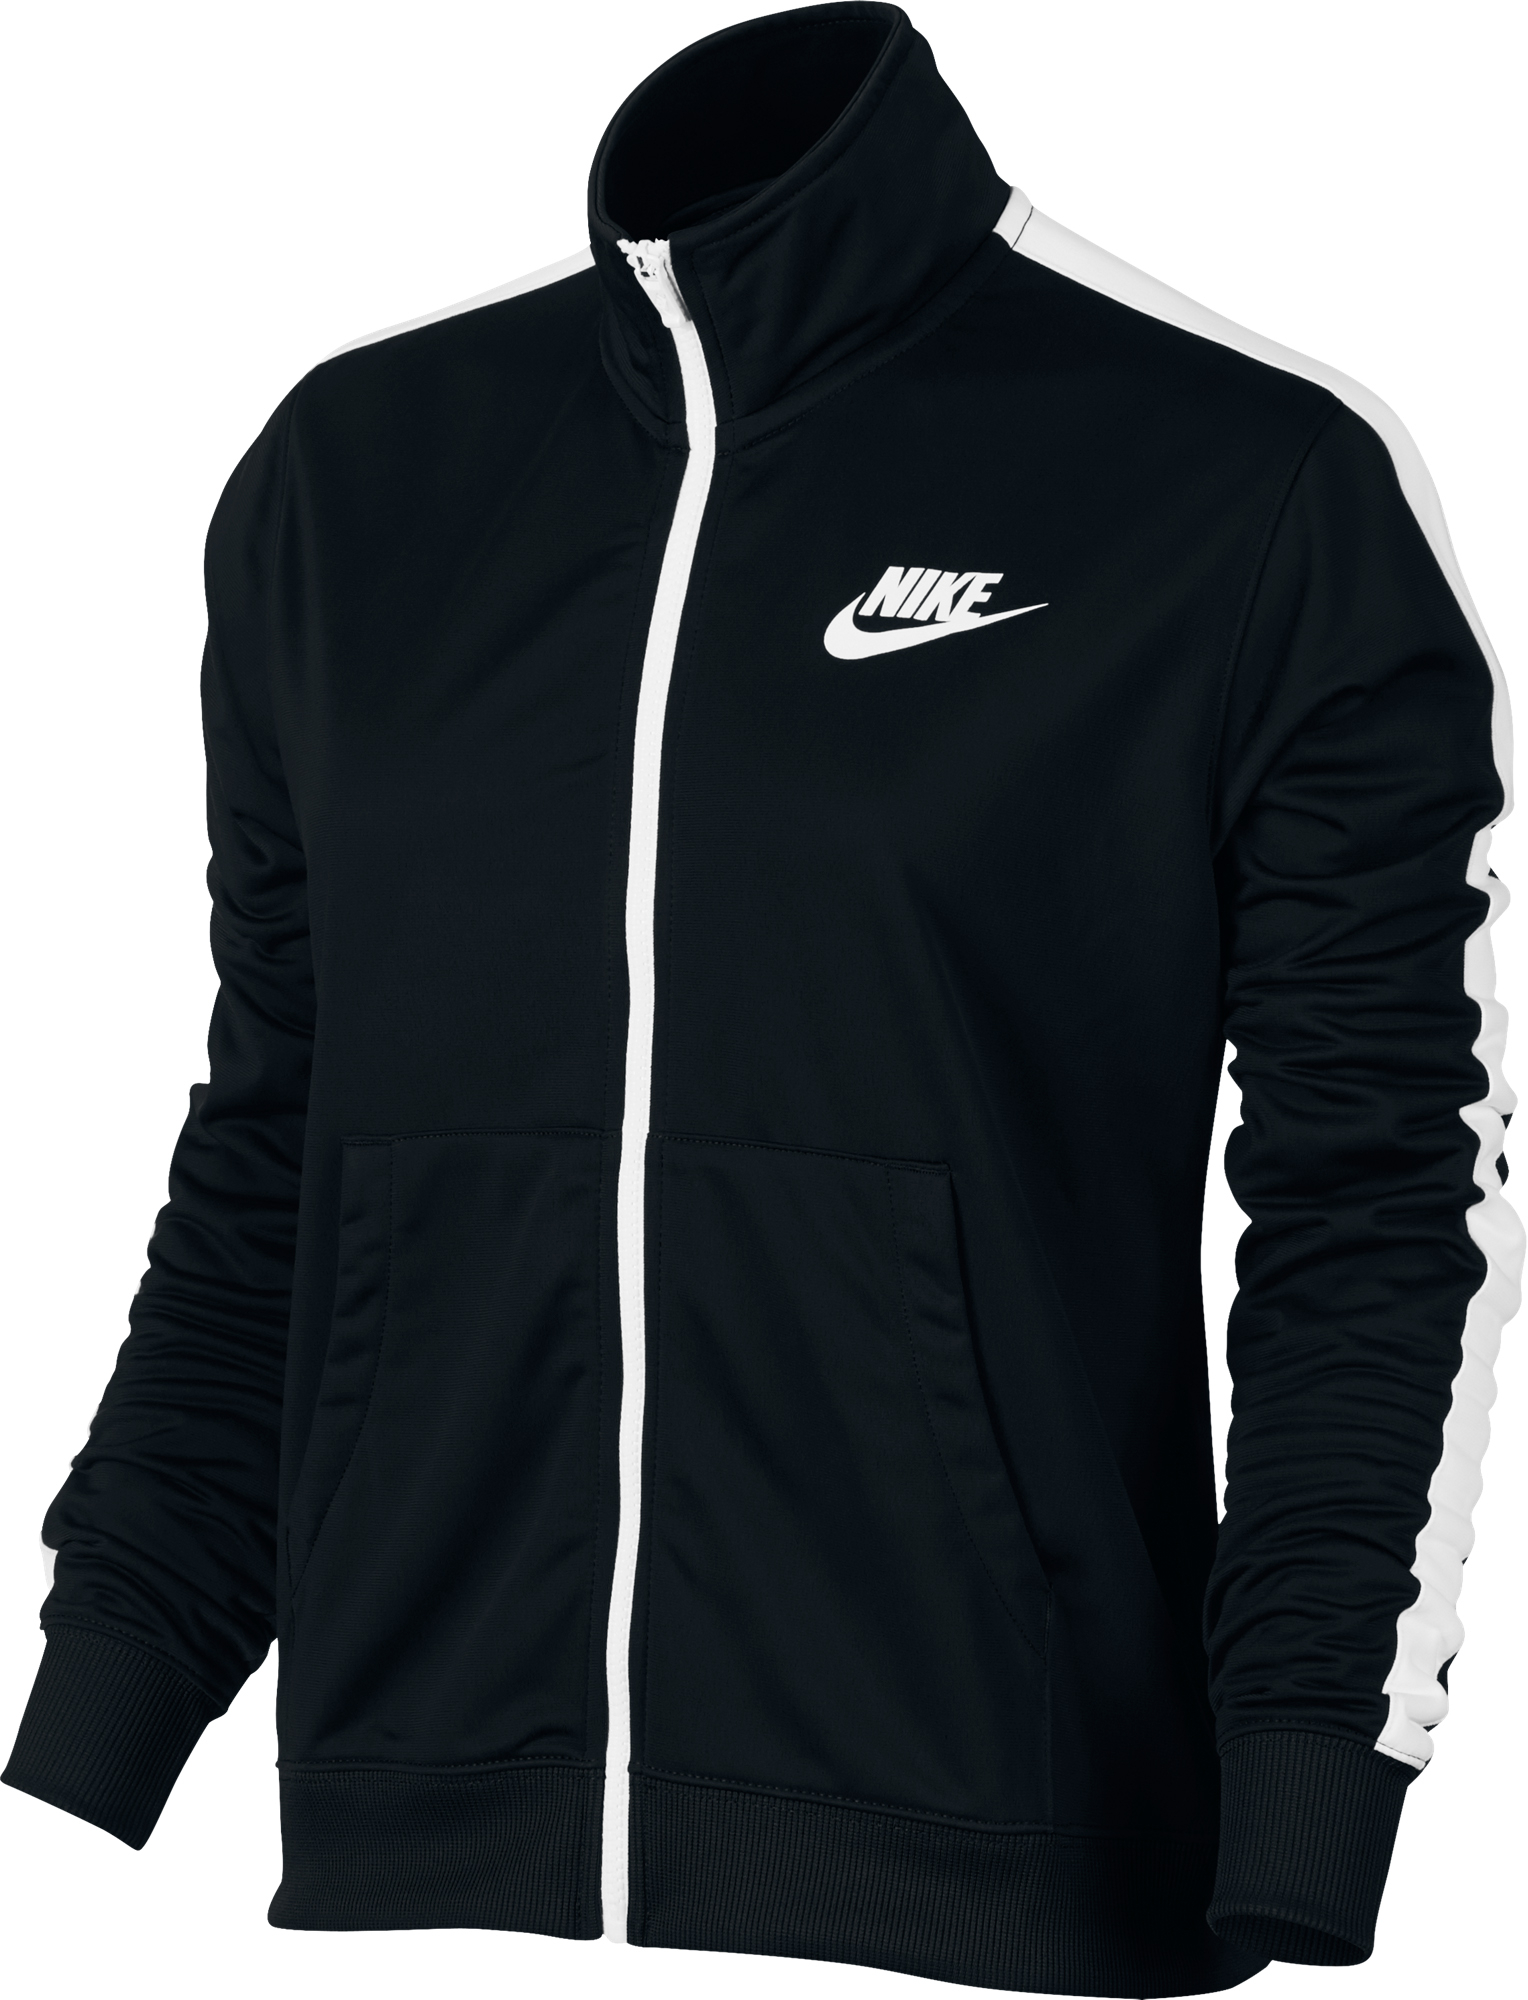 Display product reviews for Nike Women's NSW Track Jacket